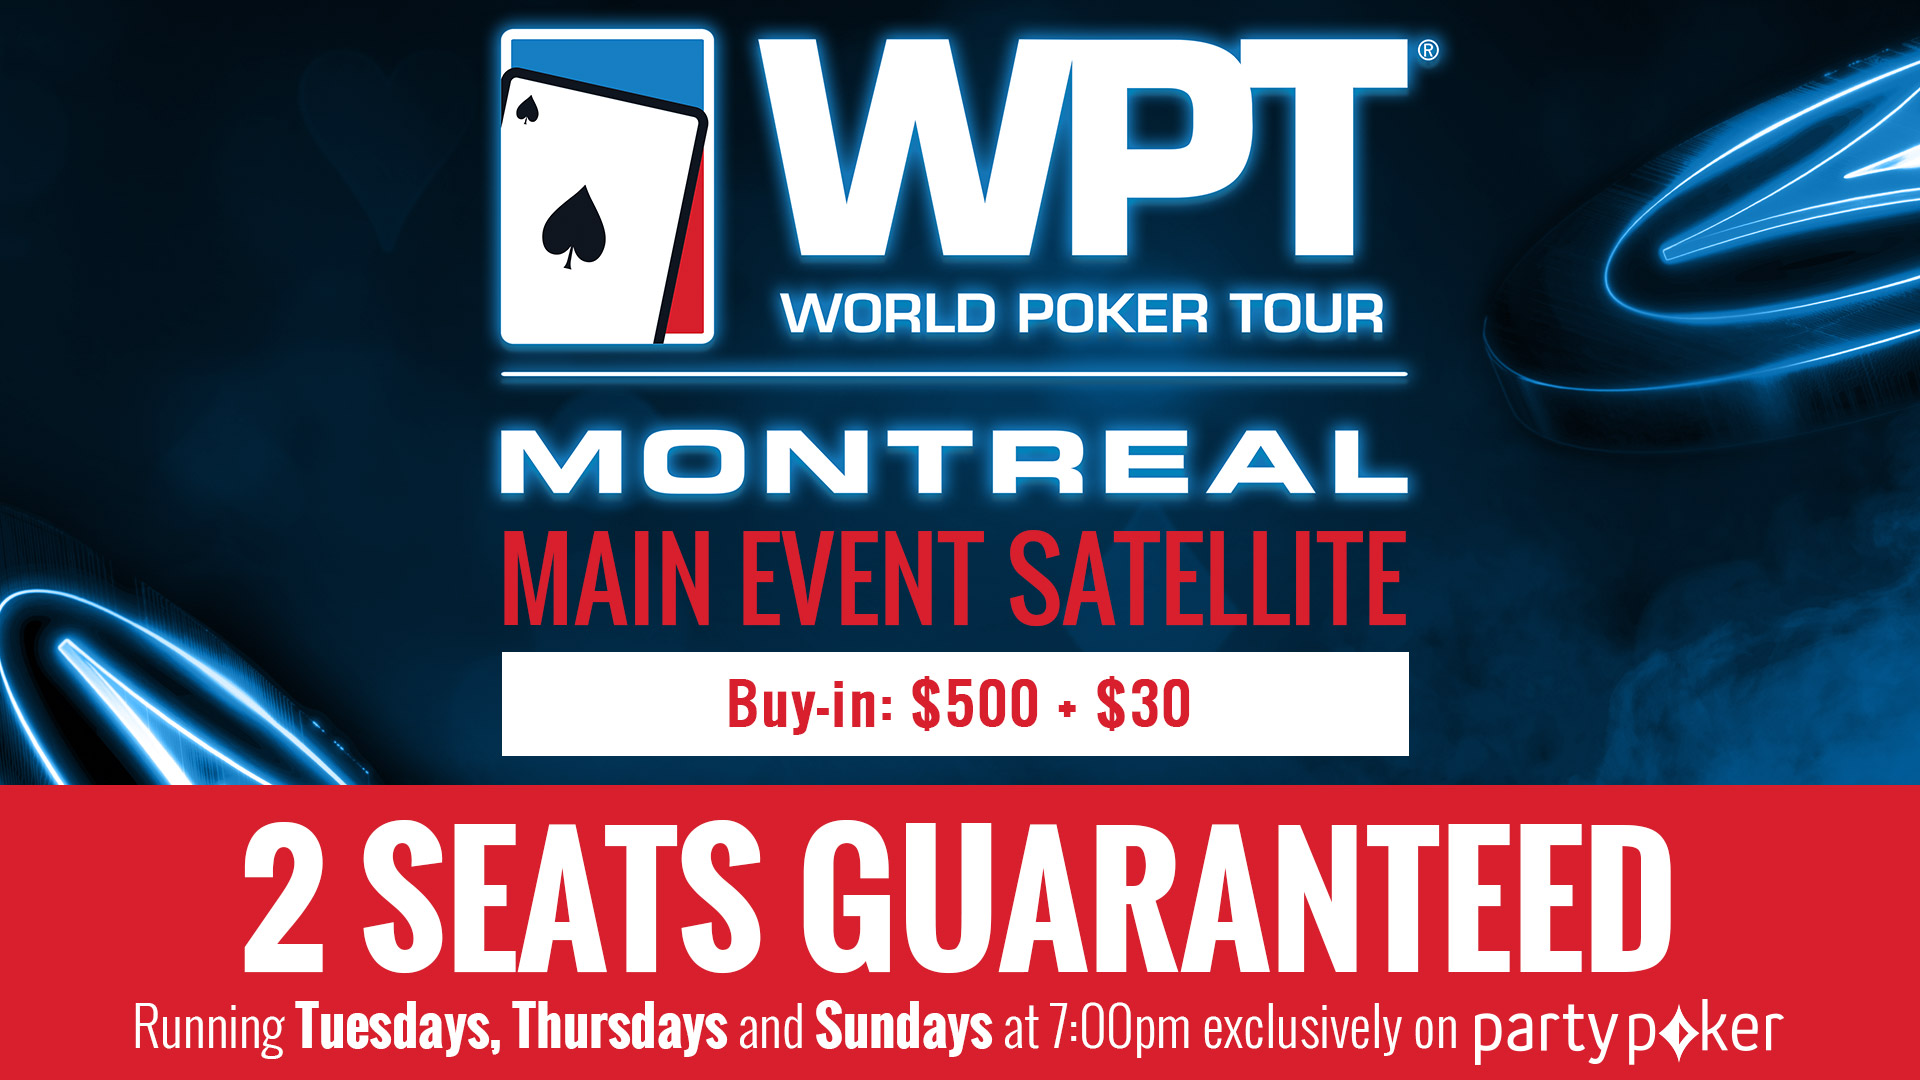 NEW – Direct satellites to the WPT Montreal on partypoker!